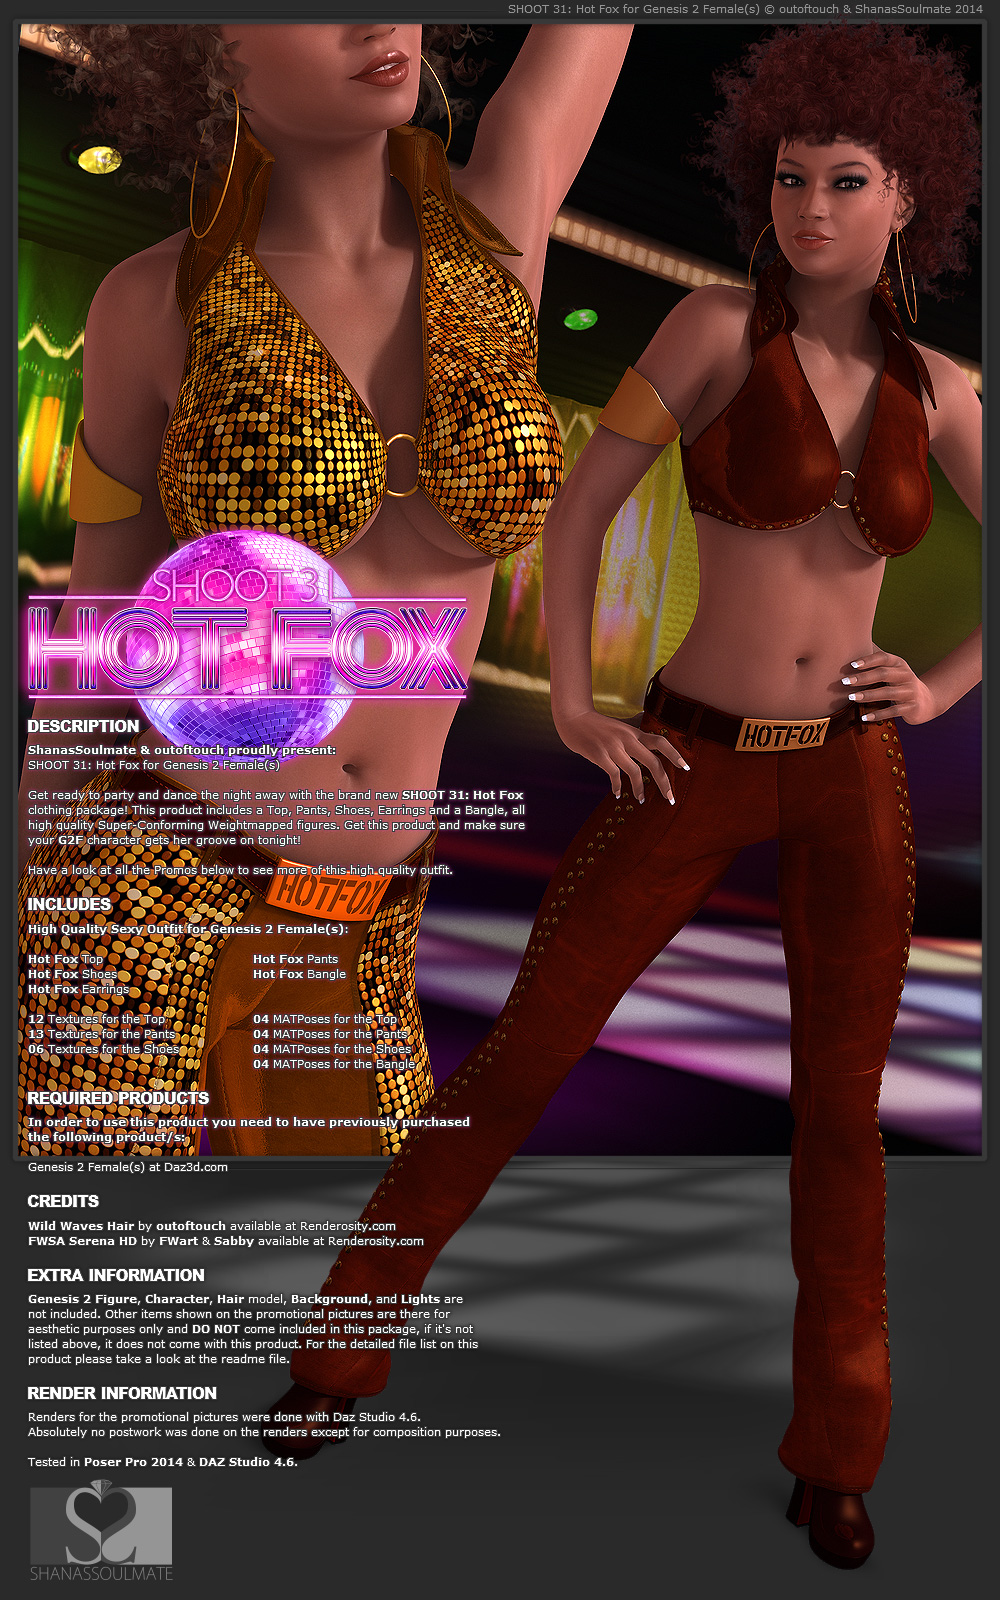 SHOOT 31: Hot Fox for Genesis 2 Female(s)